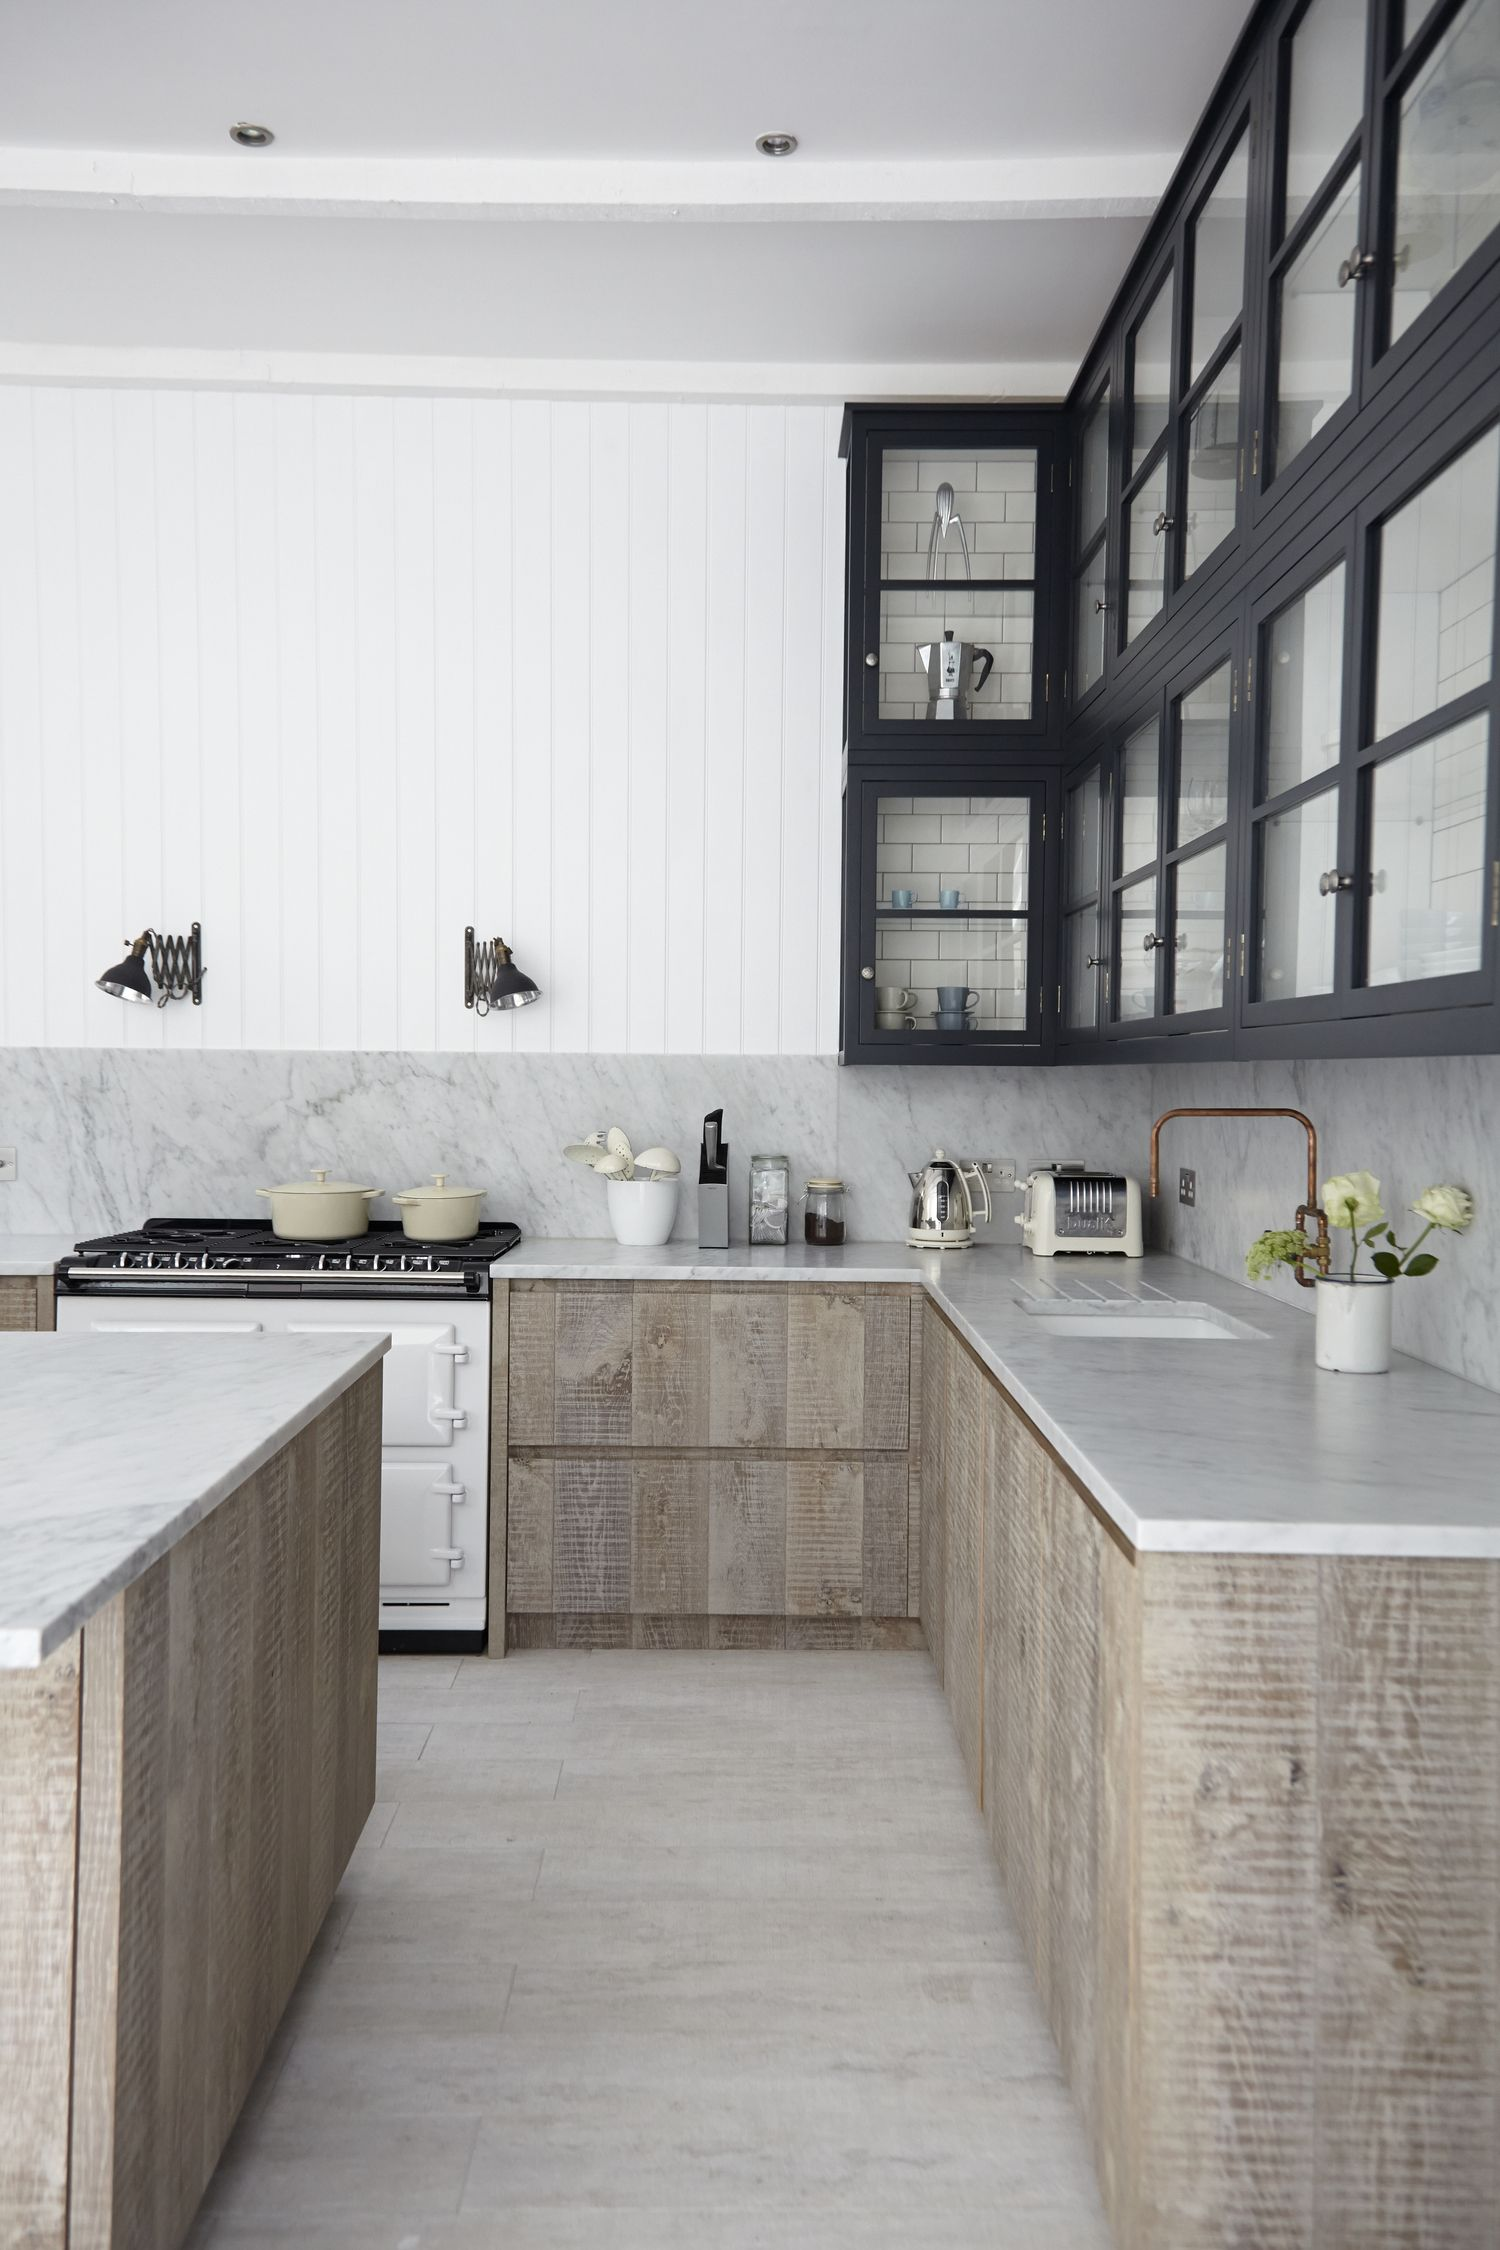 Top 10 Fresh Kitchen Design Trends For